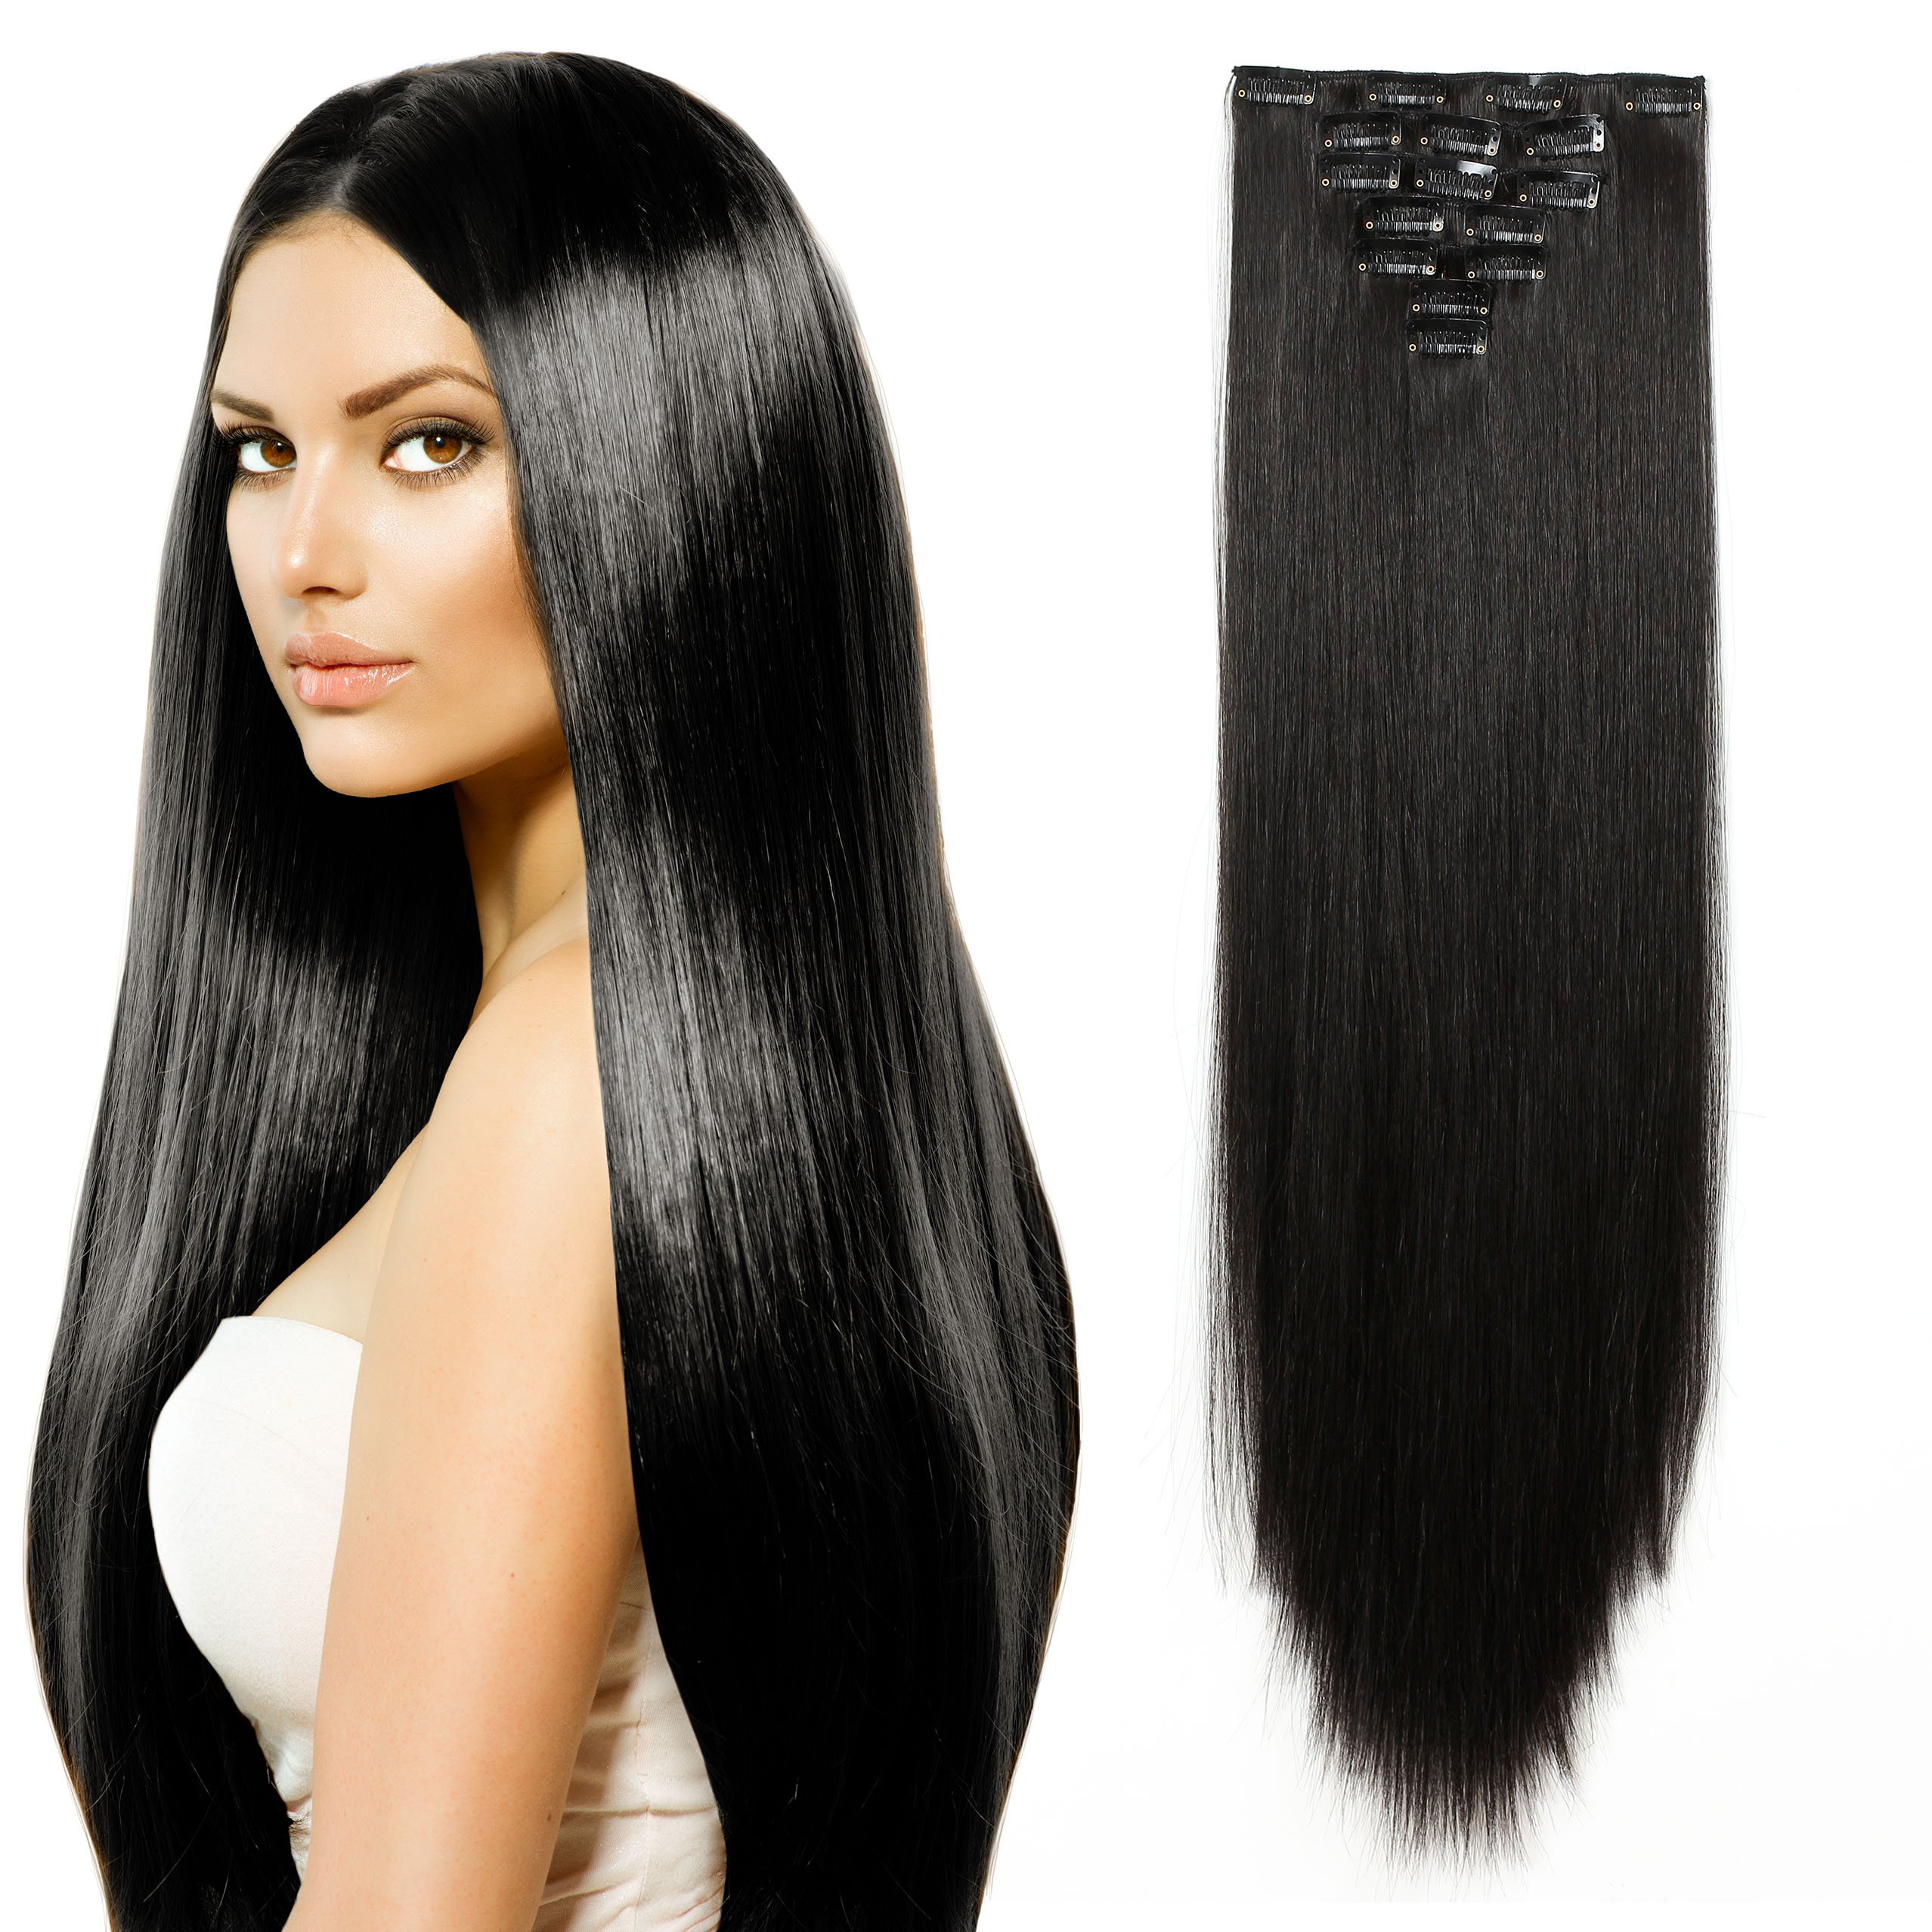 "OneDor 24"" Straight Full Head kanekalon Futura Heat Resistance Hair Extensions Clip On/in Hairpieces 7pcs 140g (Straight 2#-Darkest Brown)"